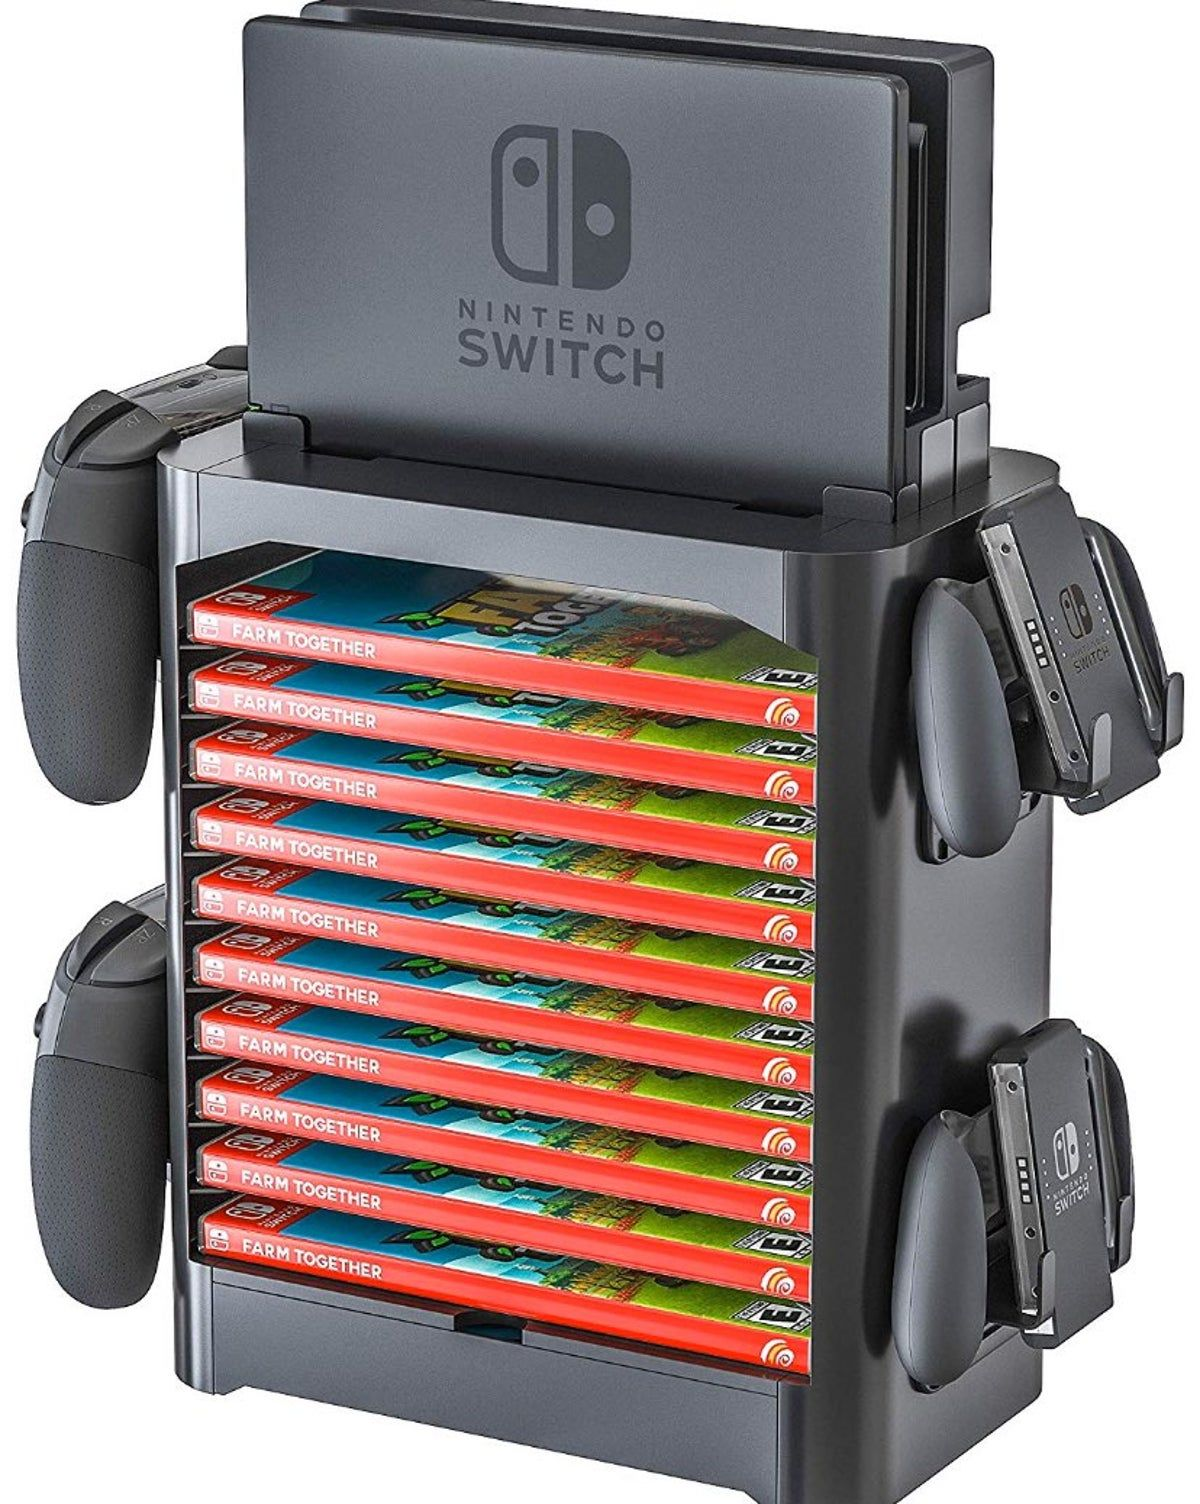 How To Get More Space On Your Nintendo Switch